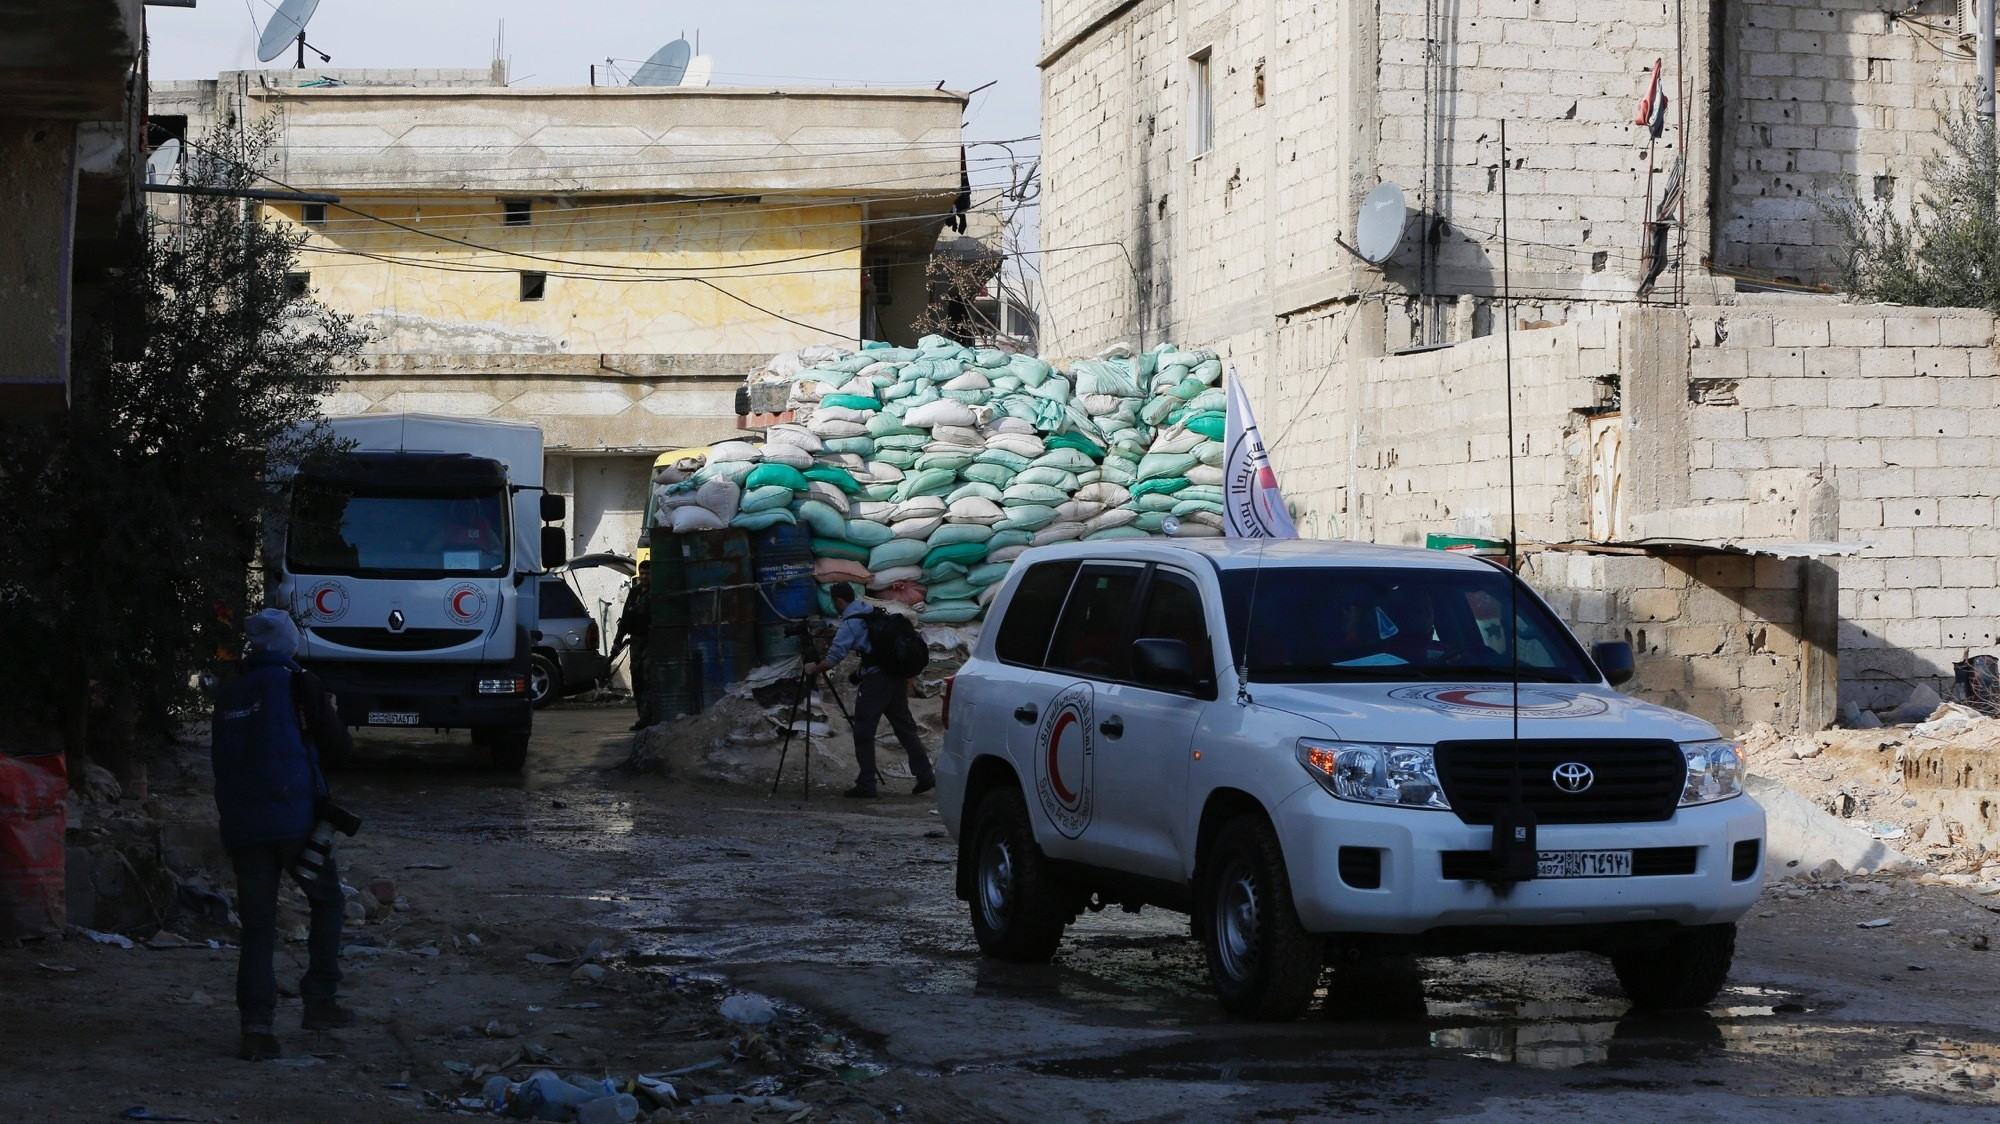 The Syrian Regime Is Blocking Aid to Hundreds of Thousands in Dire Need, Despite Ceasefire